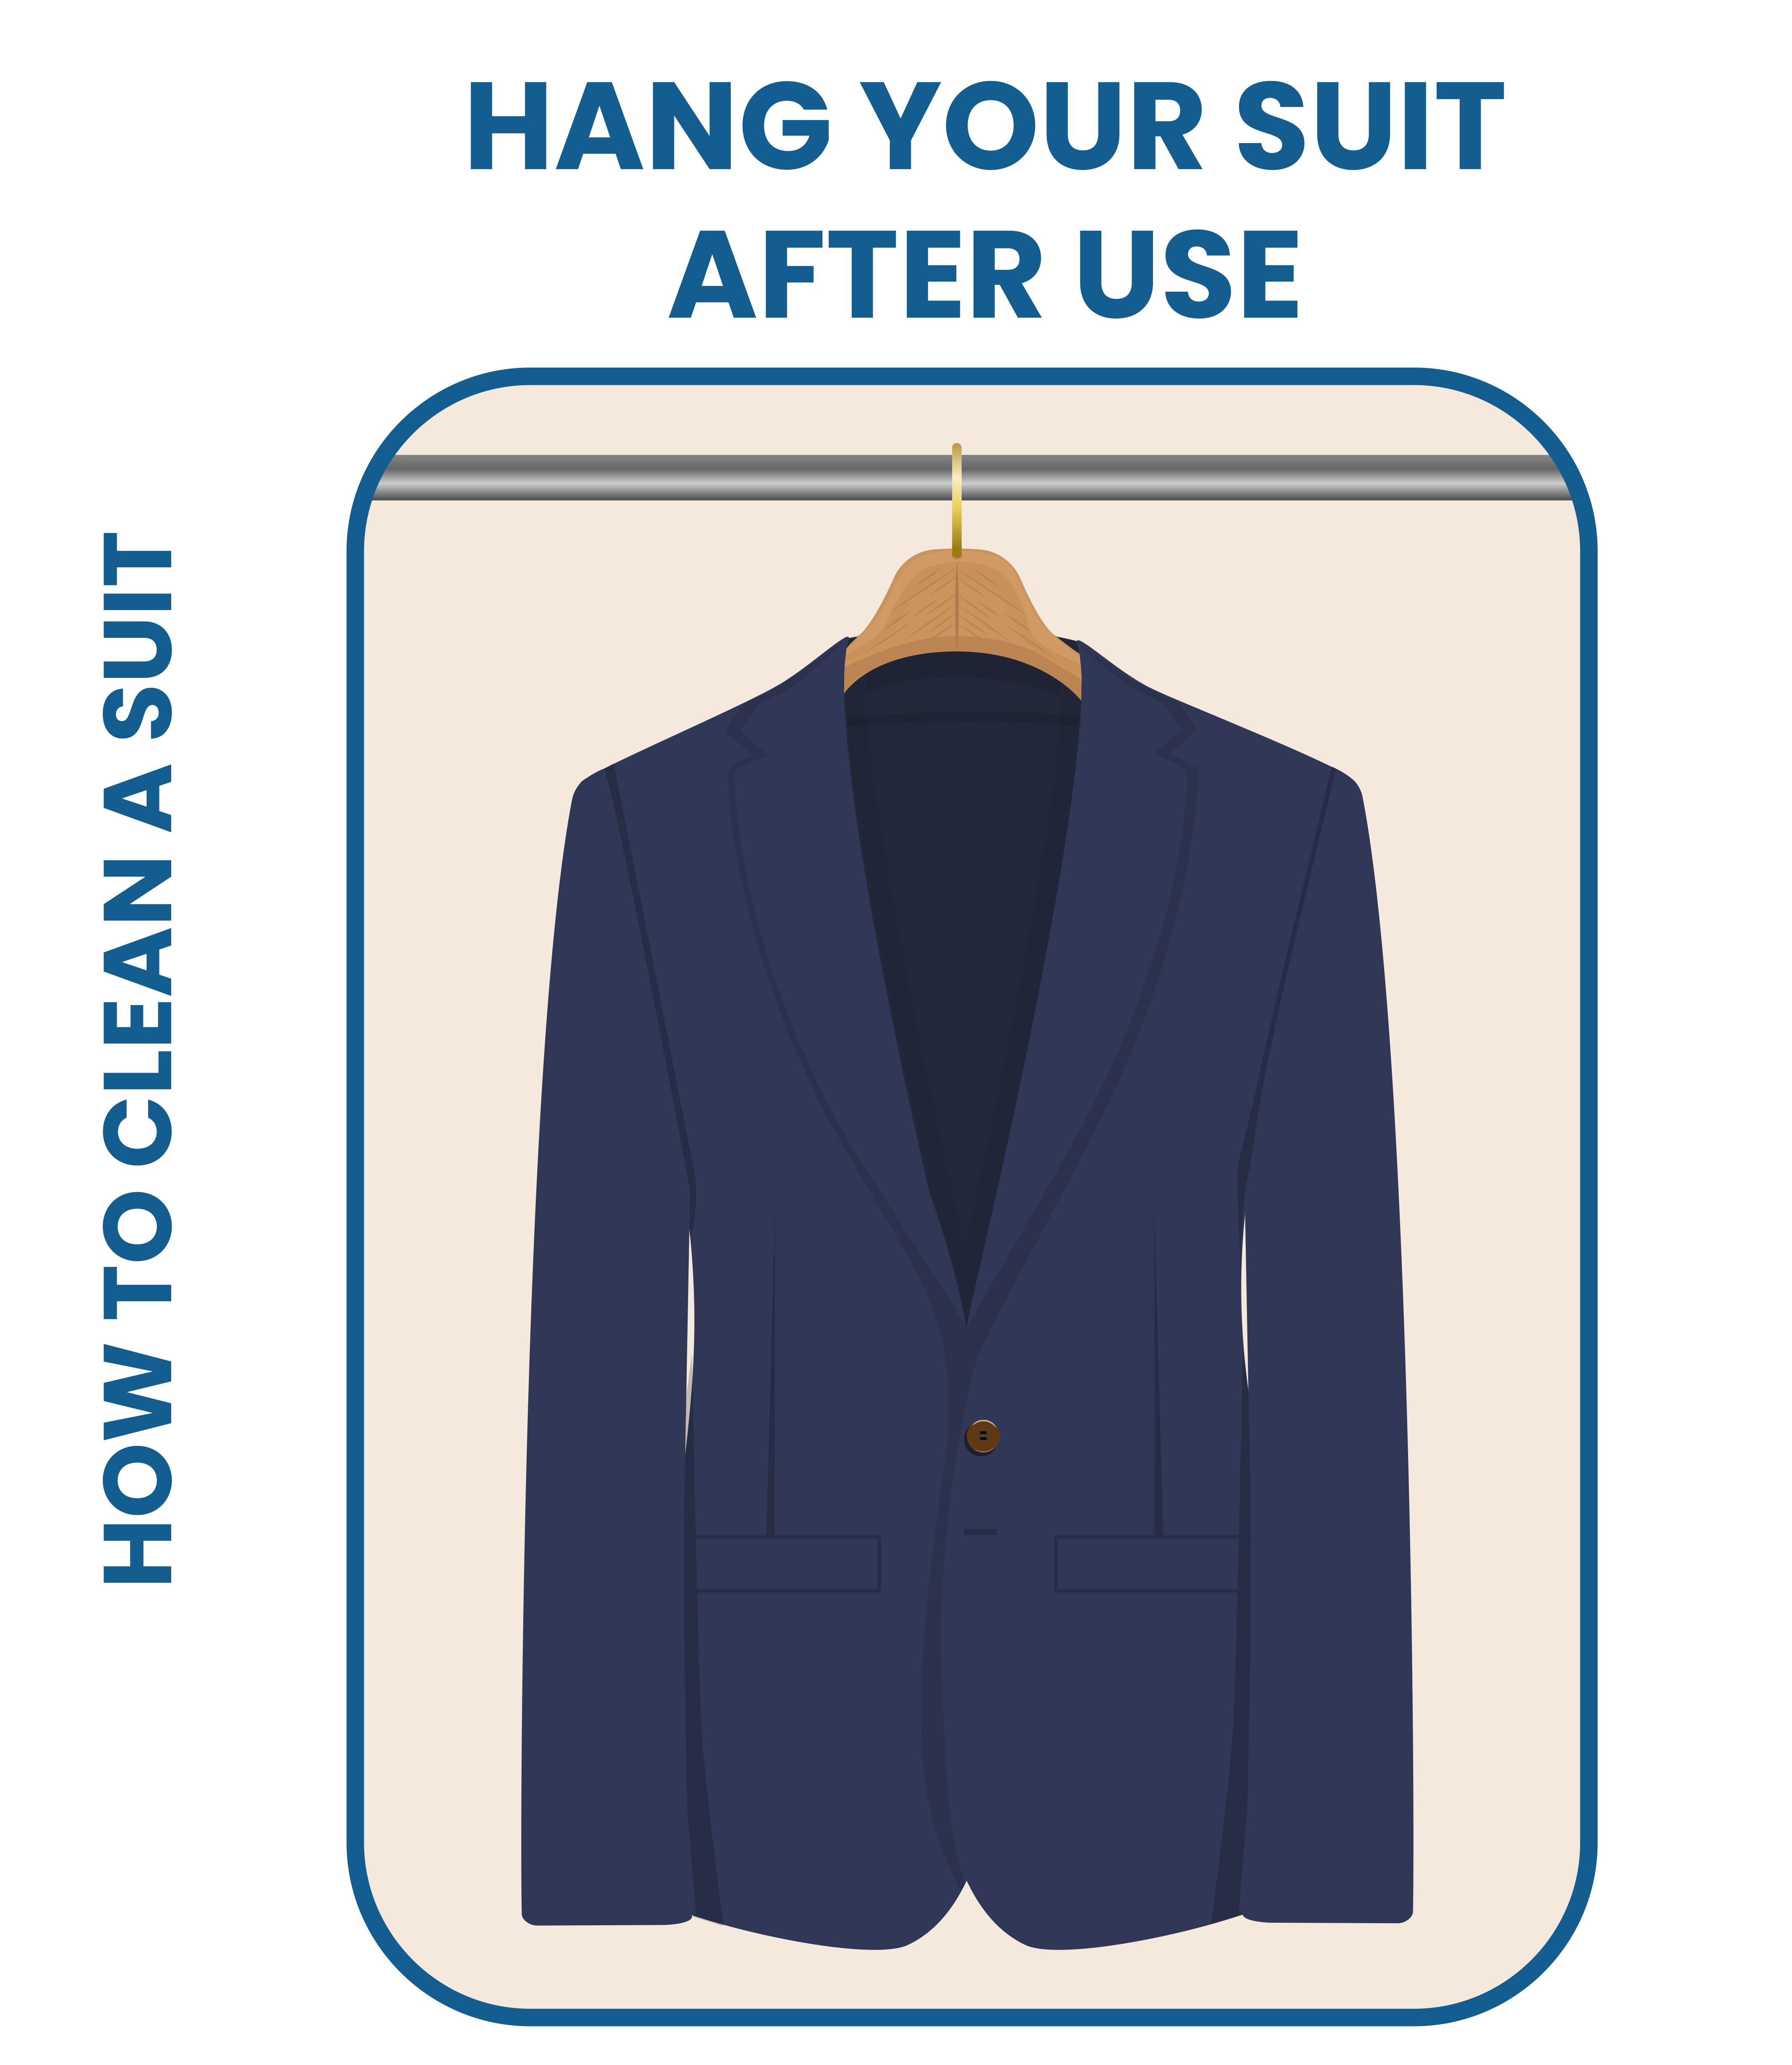 hang your suit after use